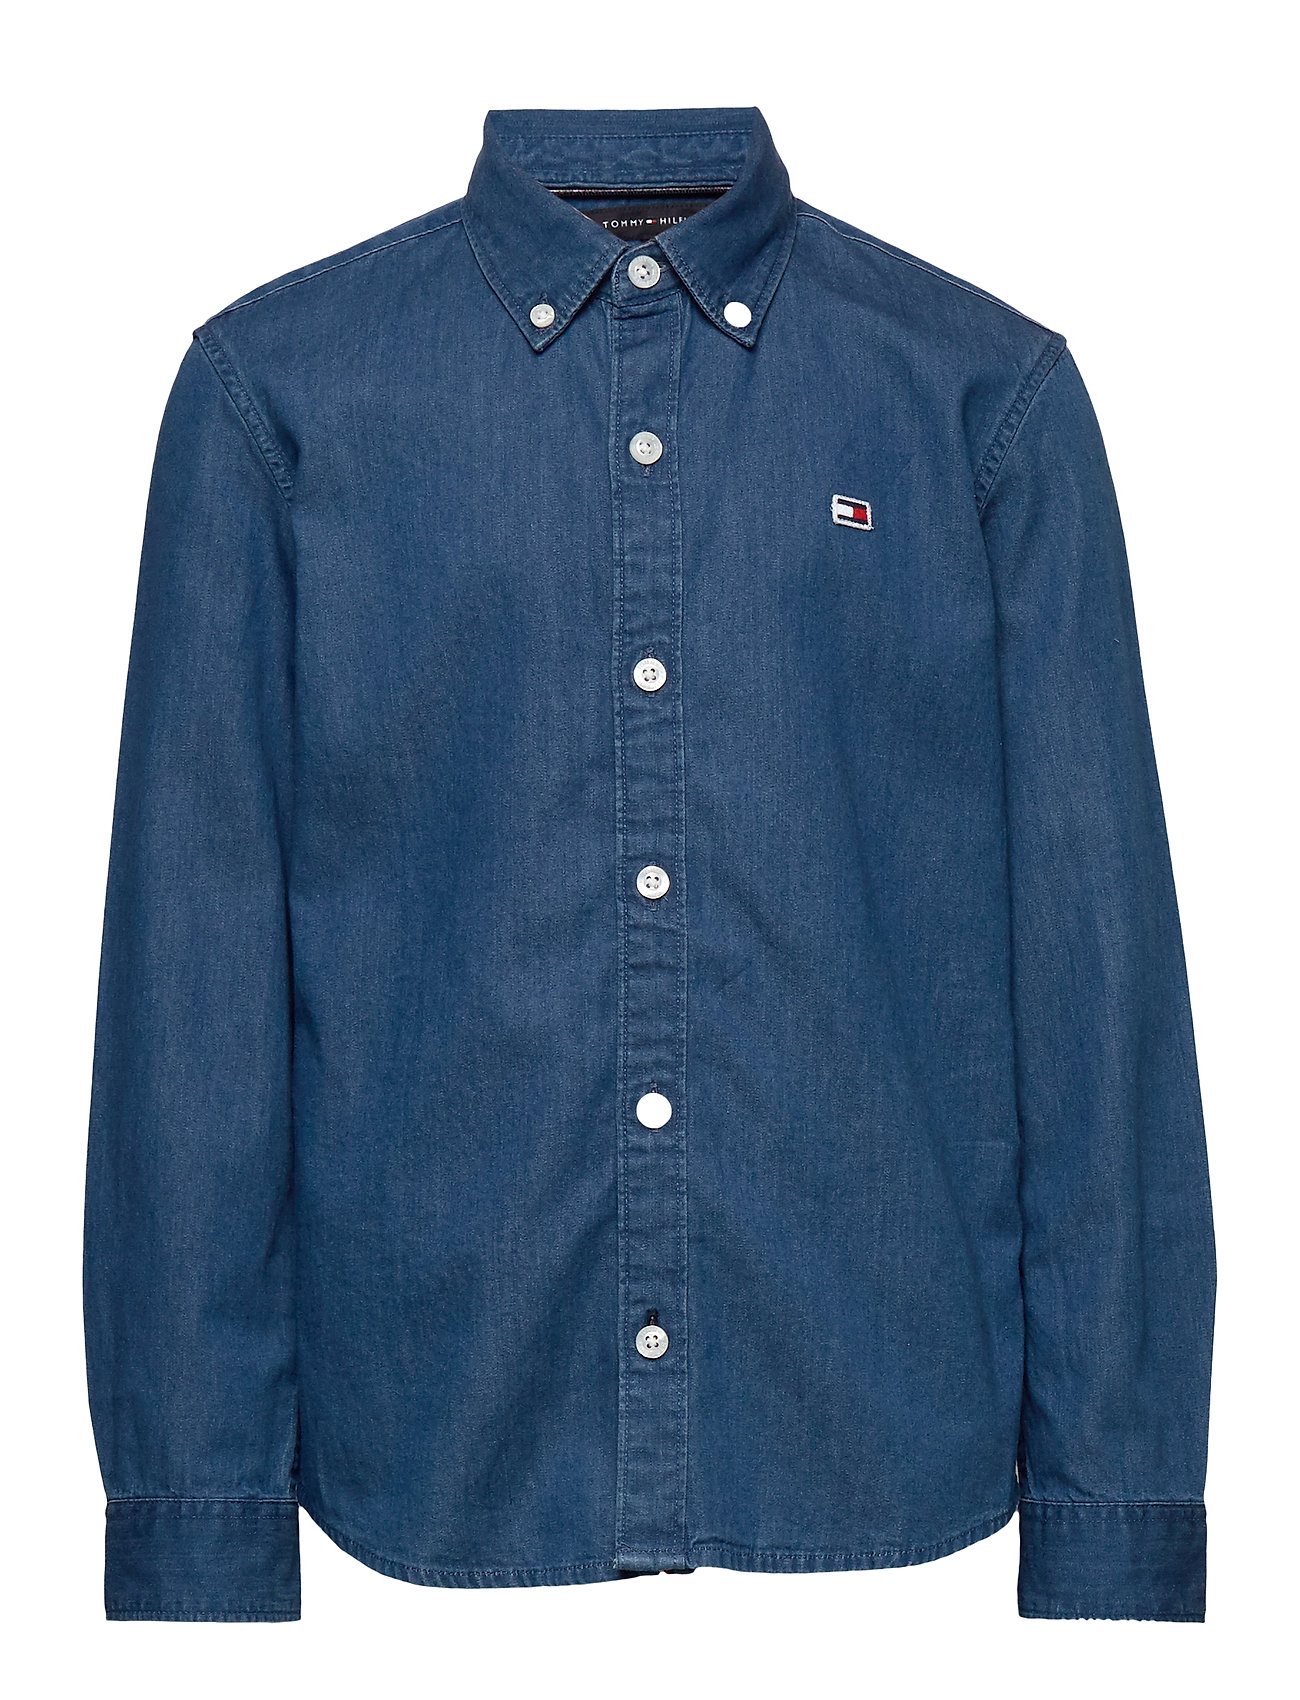 Tommy Hilfiger DENIM SHIRT L/S - DENIM DARK 01